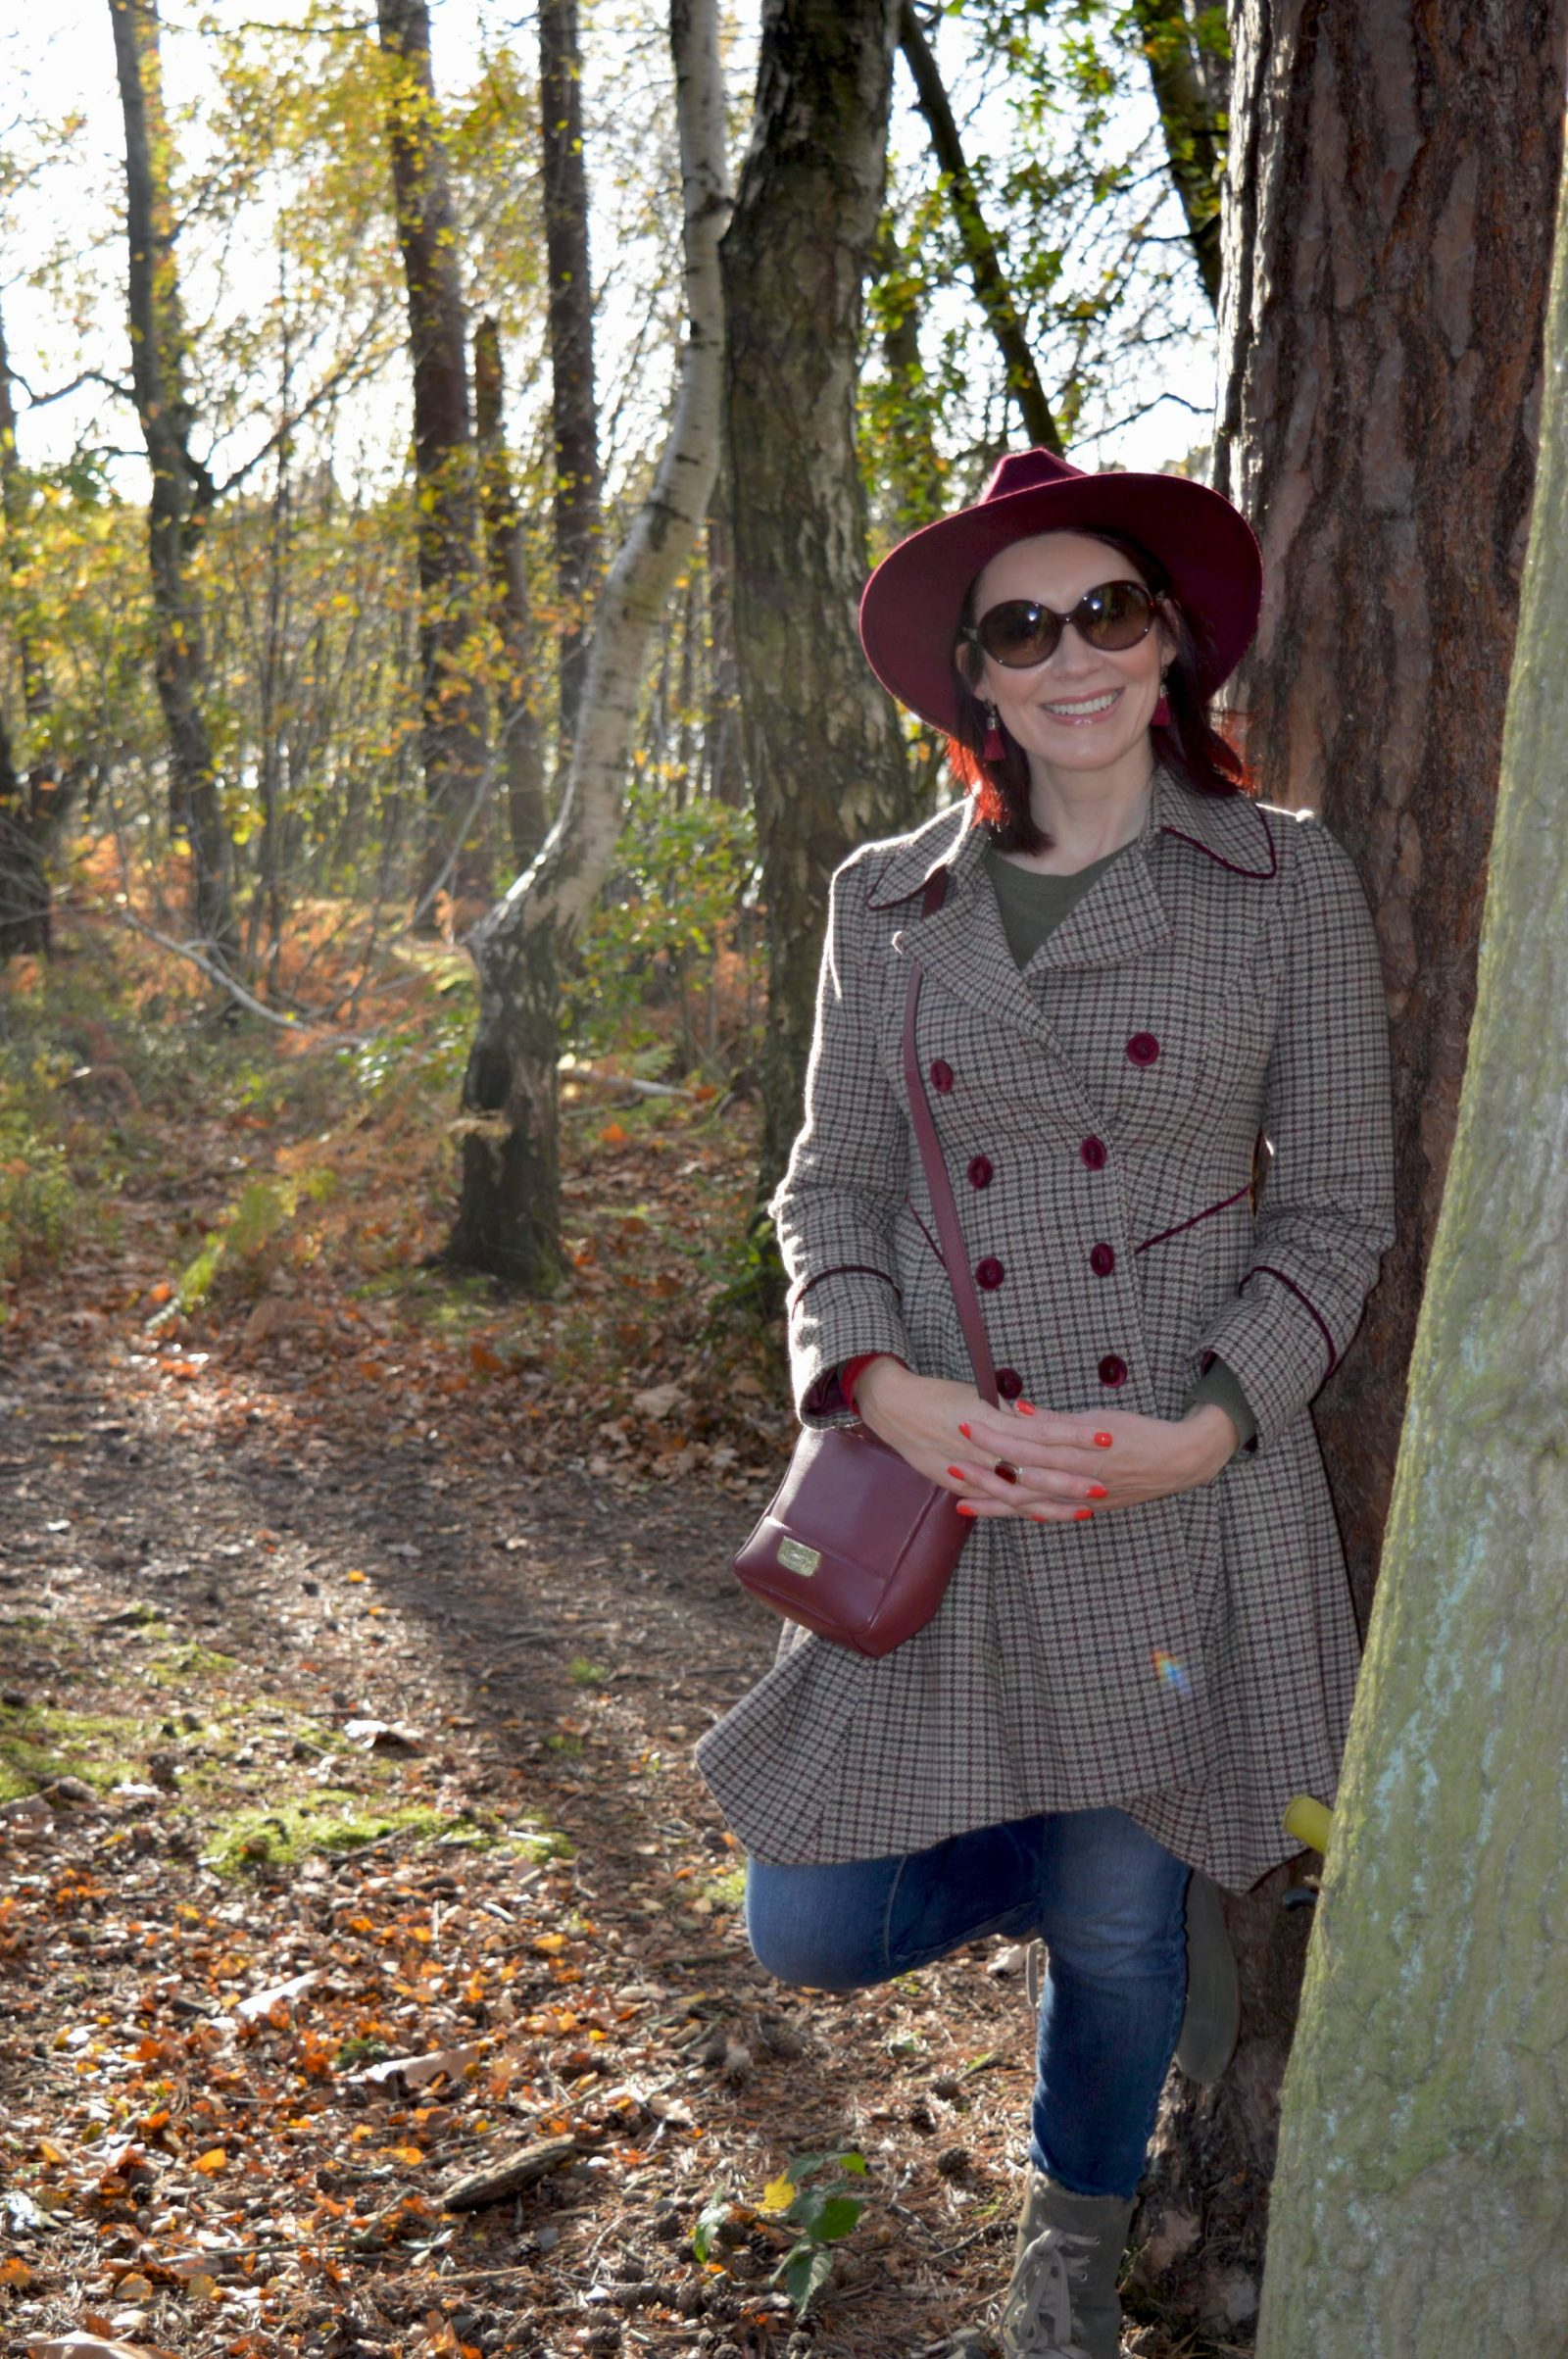 Checked Coat and Wide Brim Hat for a Walk in the Forest + Link Up